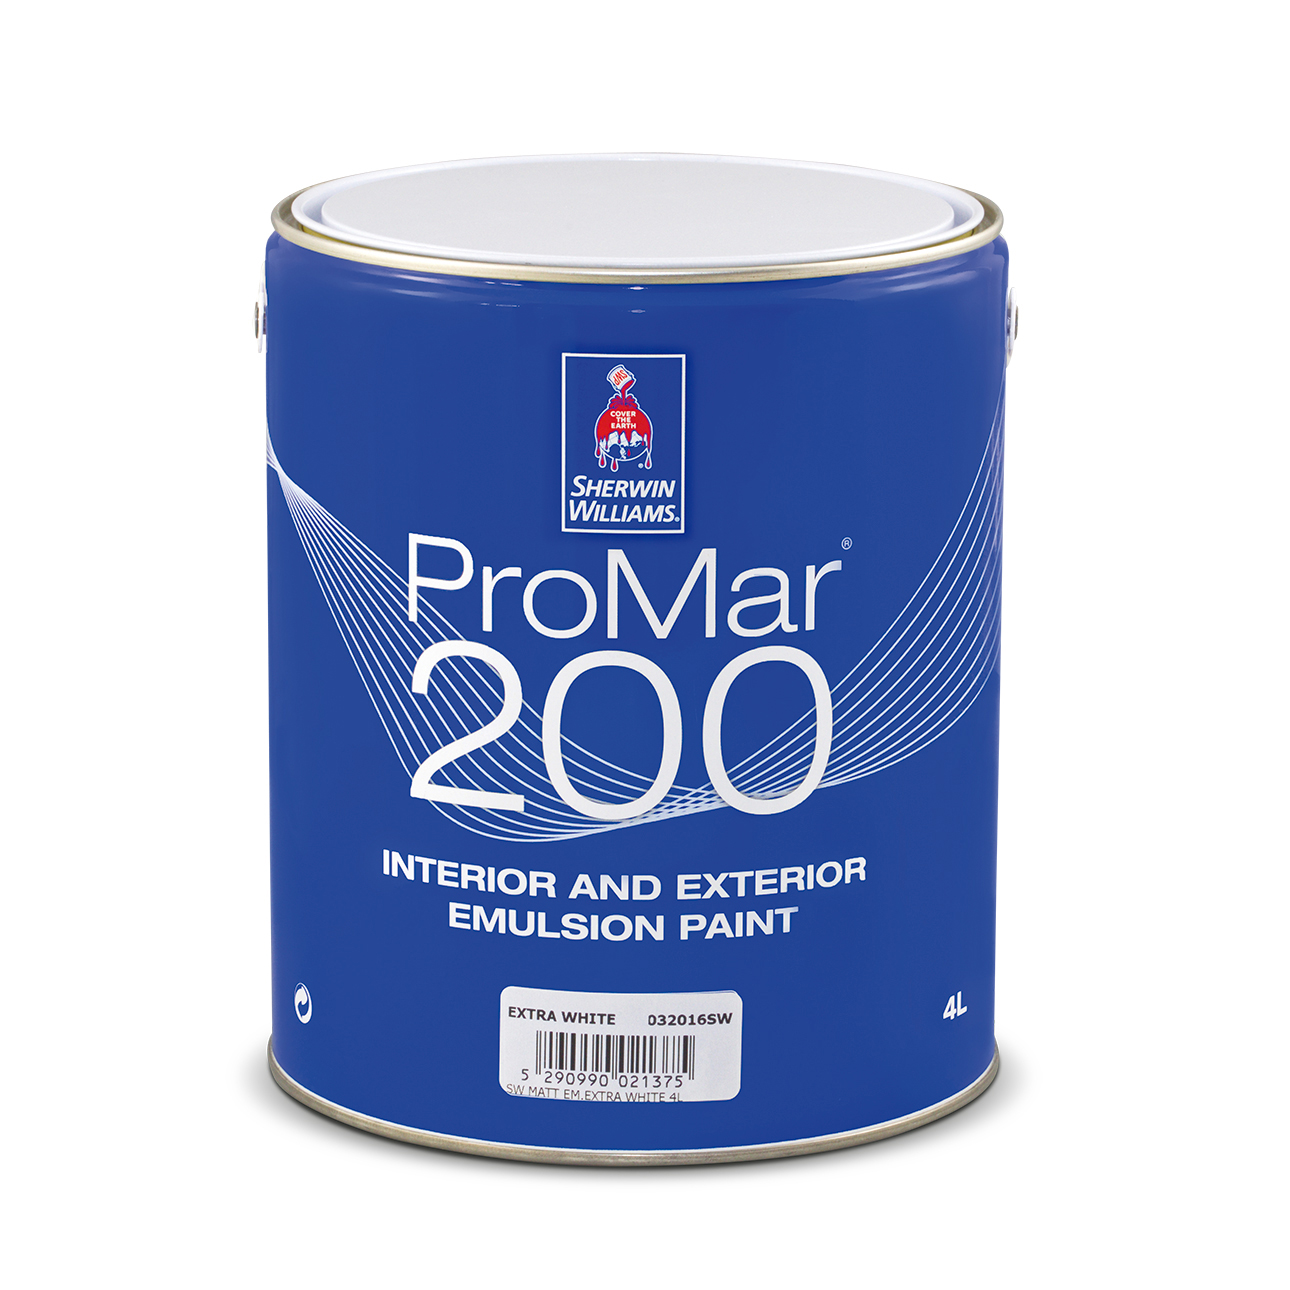 SHERWIN-WILLIAMS® PROMAR® 200 INT&EXT EMULSION SUPERWHITE 16L